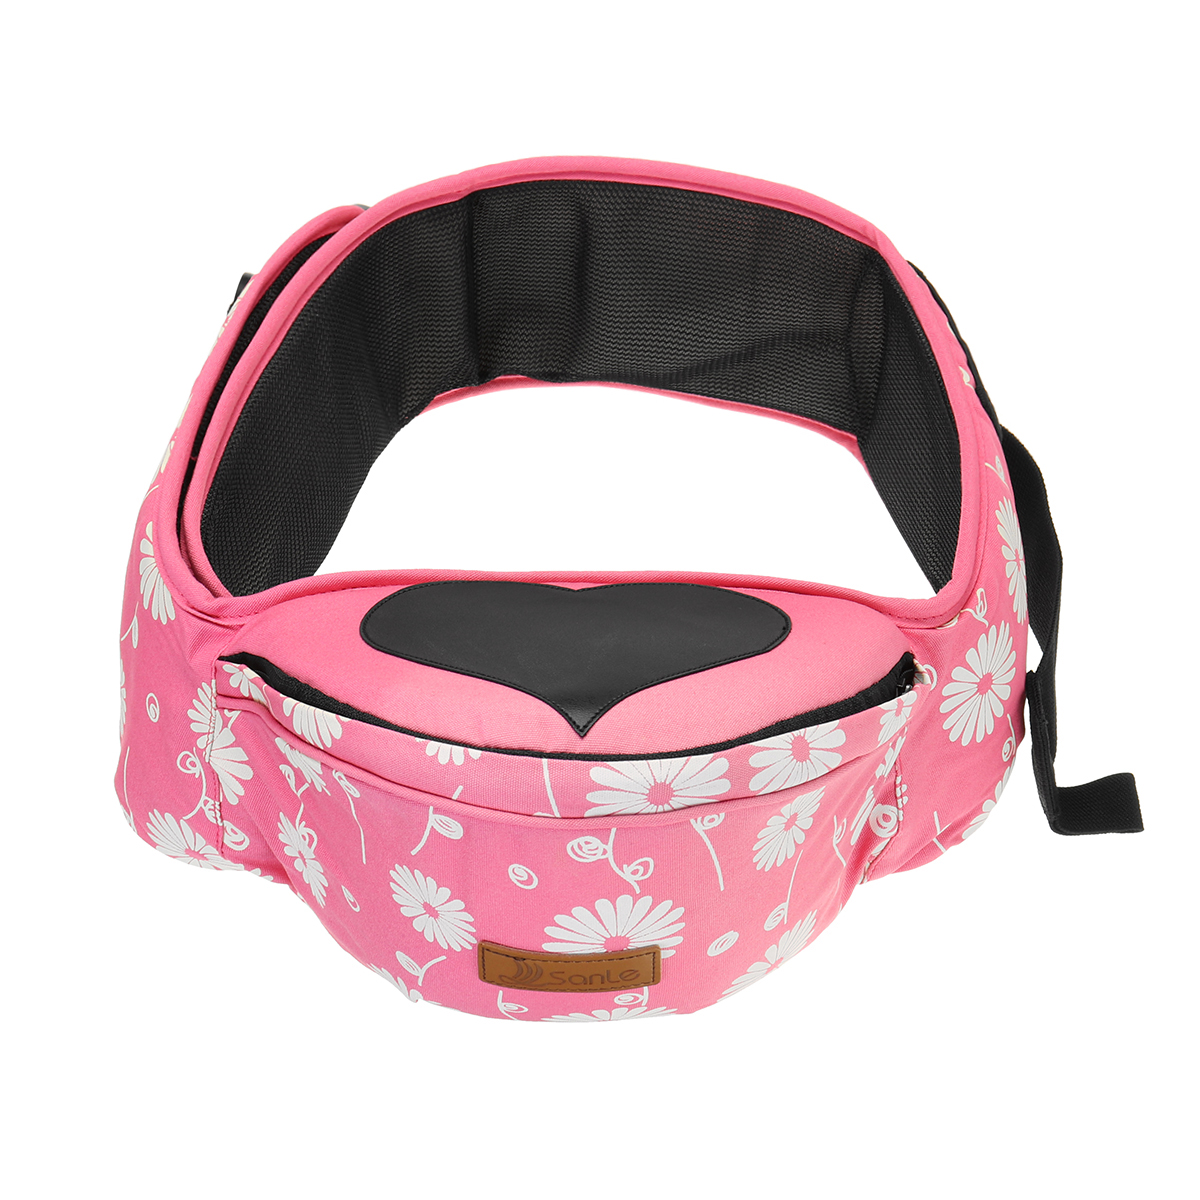 Kids Bench Sling Hipseat Belt Backpack Infant Hip Seat